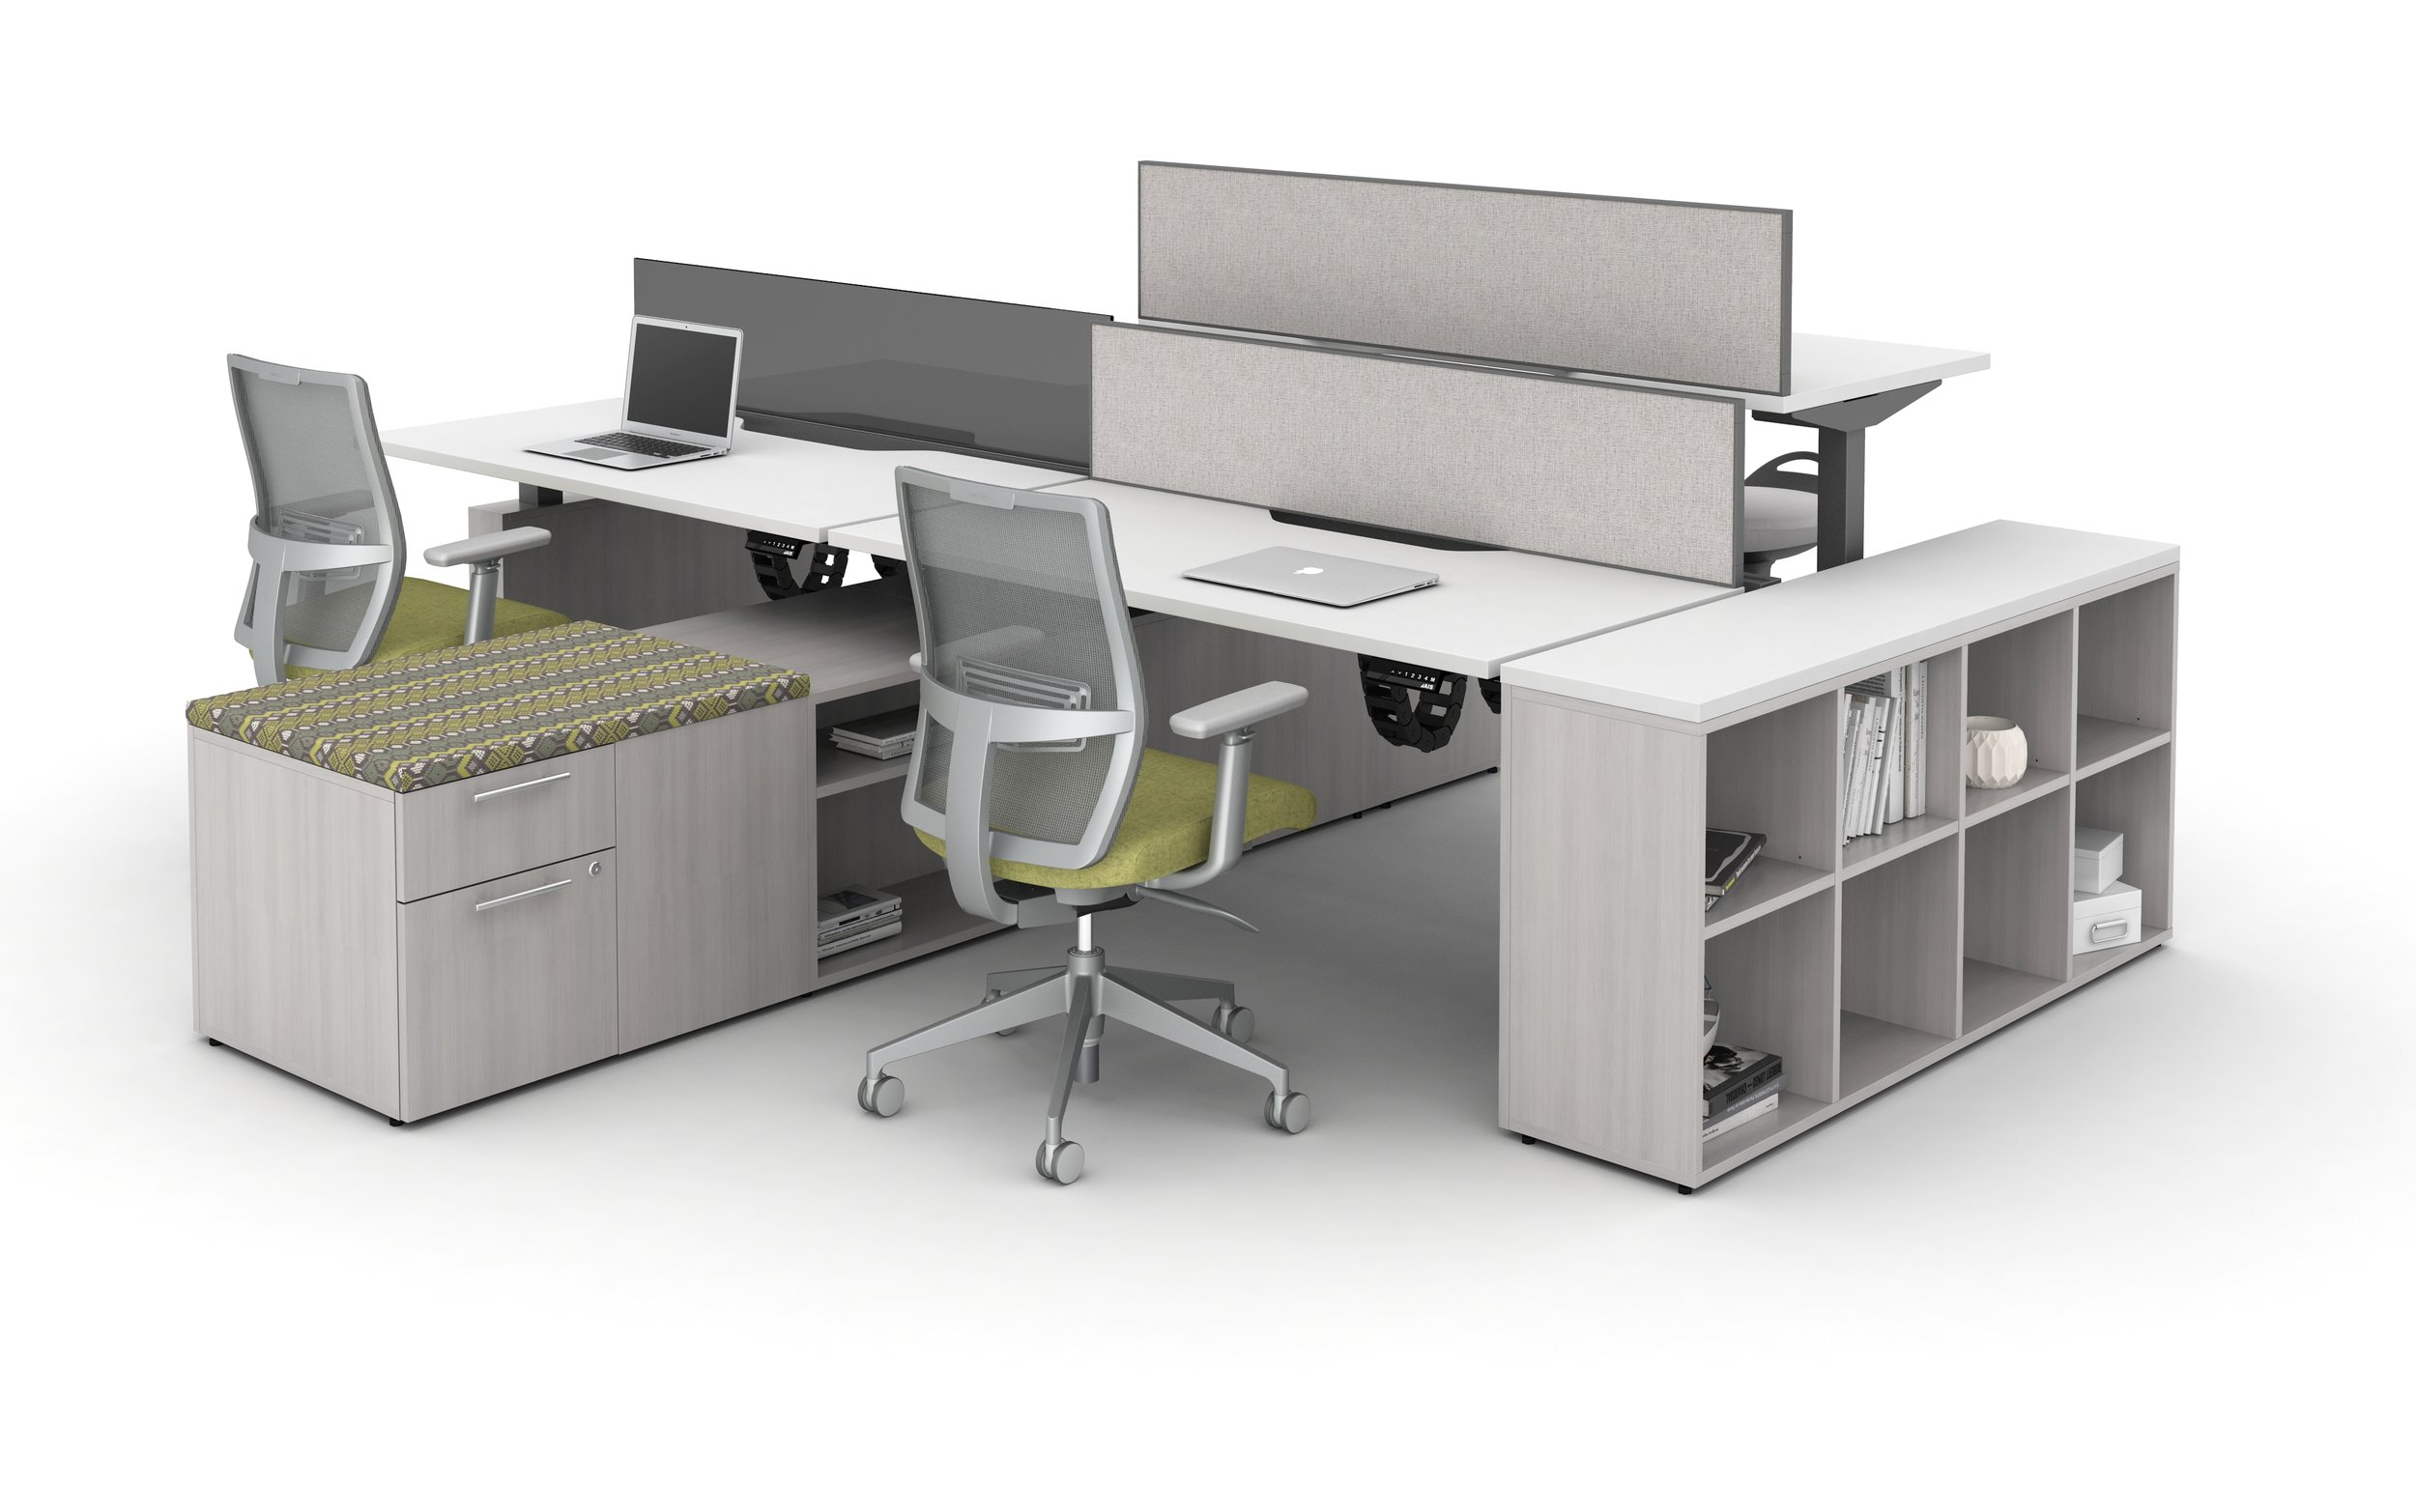 Aloft Height adjustable system with devens task seating and calibrate storage (quoting height adjustable desks across from each other)